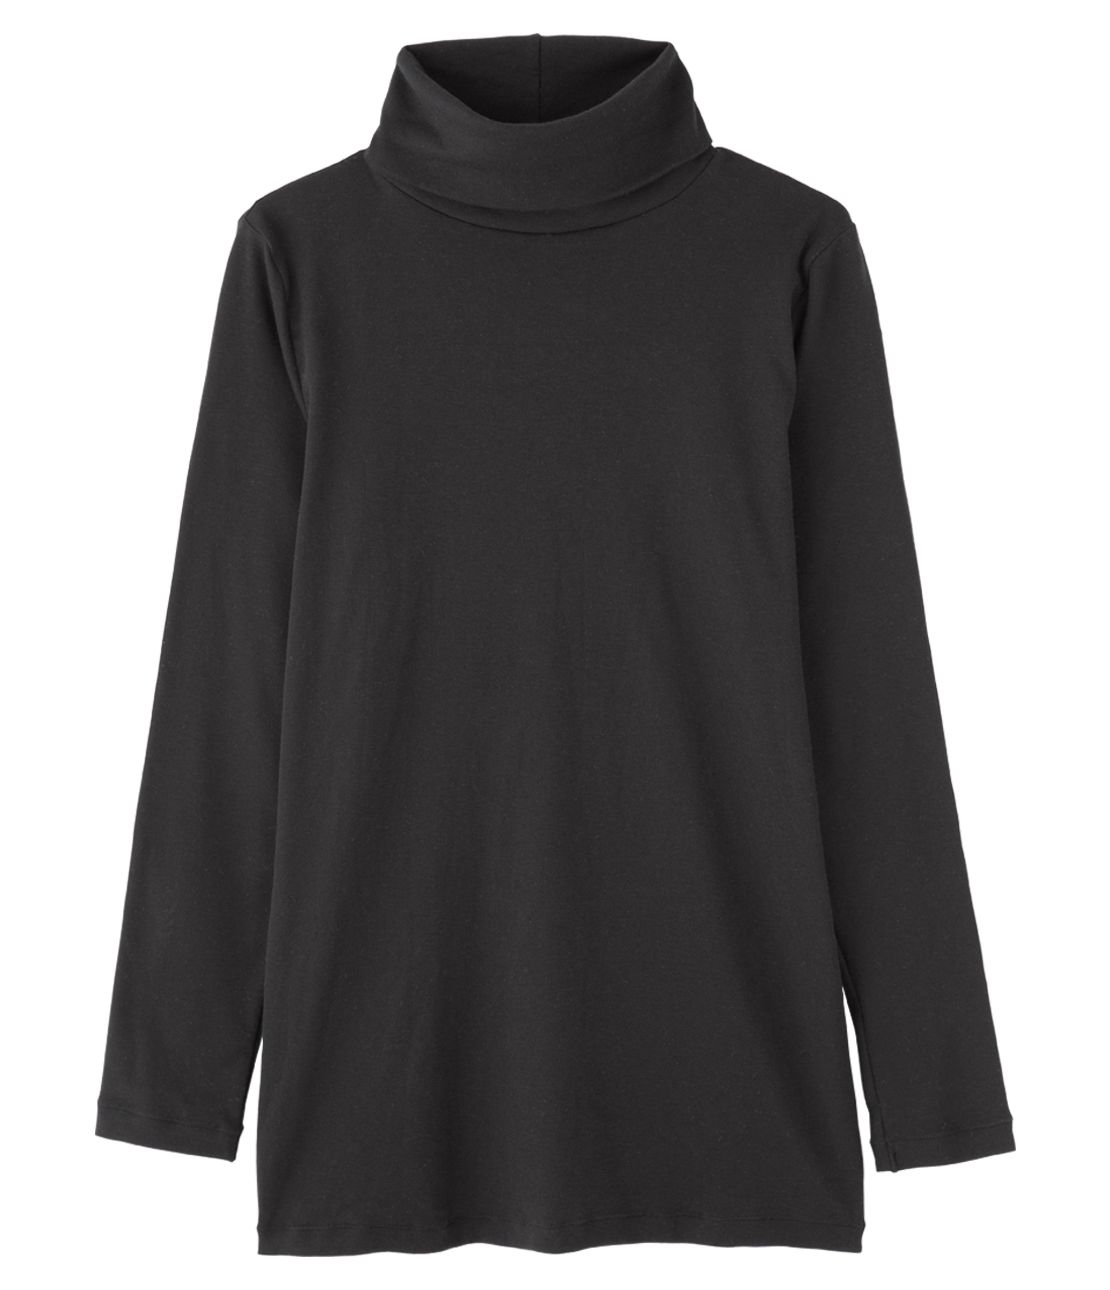 Cotton silk turtleneck long-sleeved